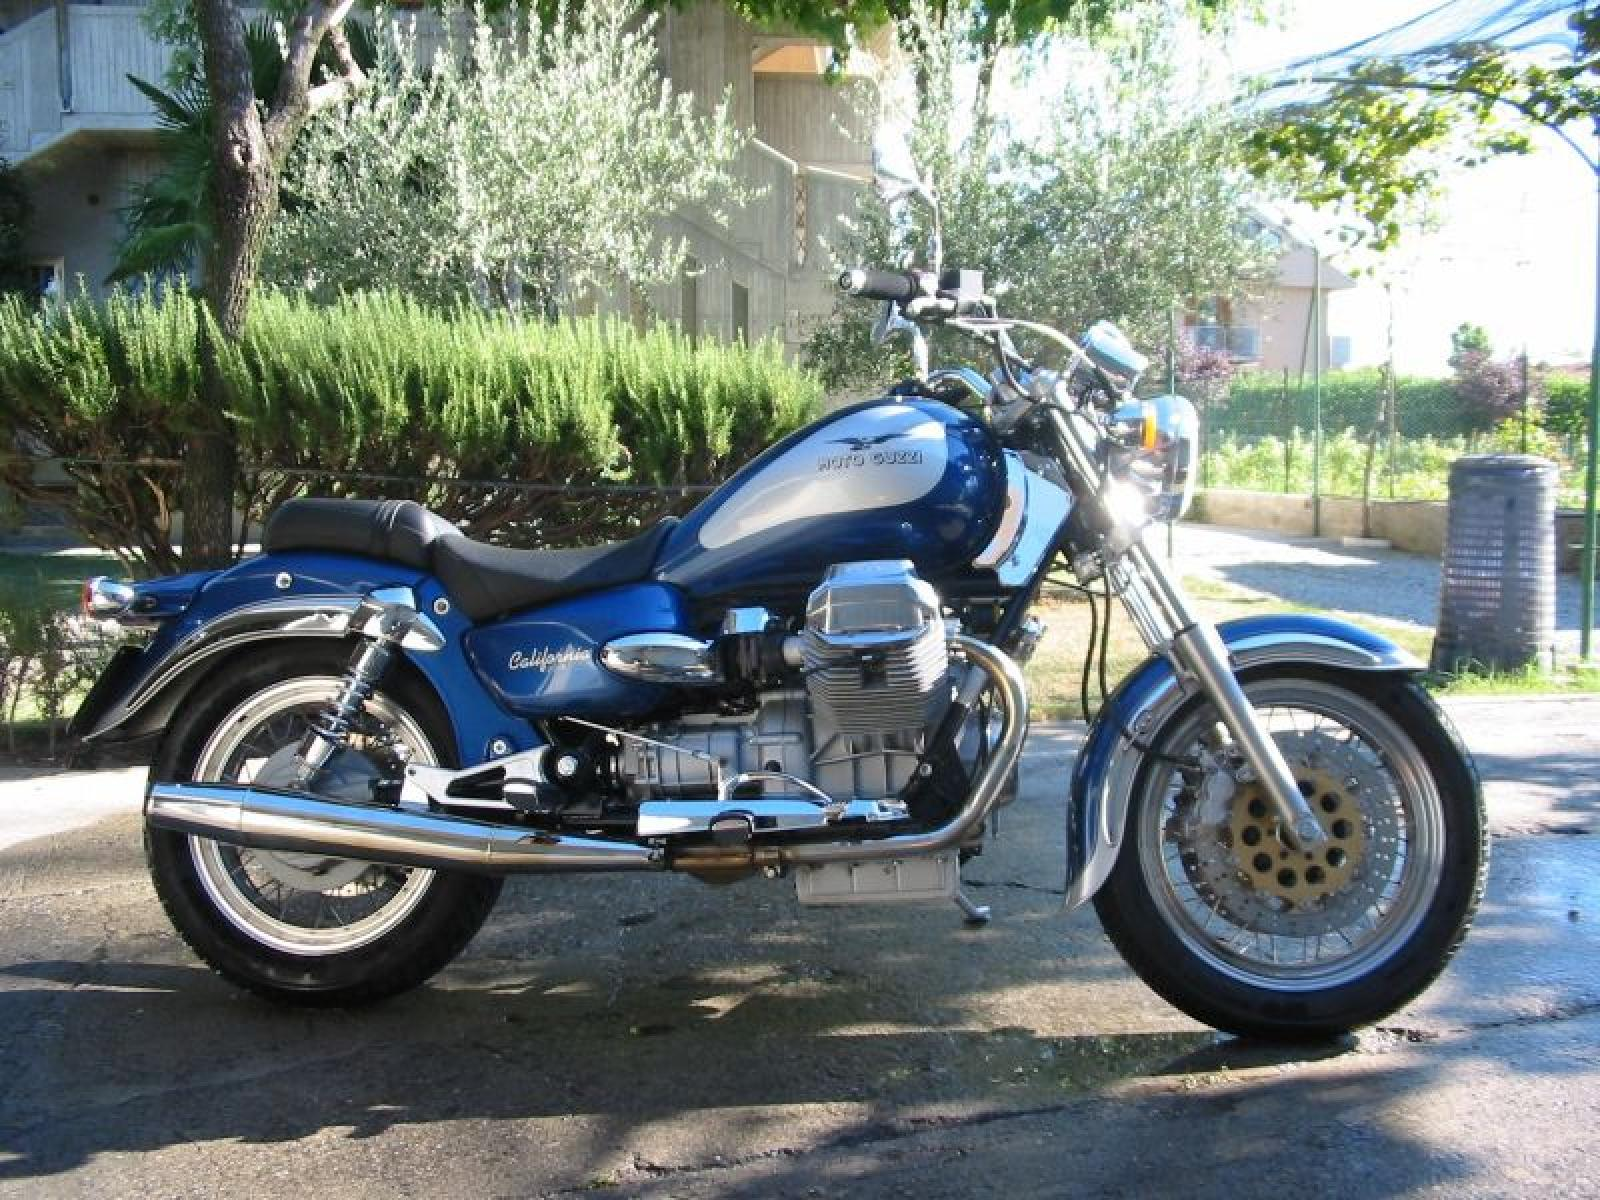 Moto Guzzi California 1100 Injection 1994 images #108128